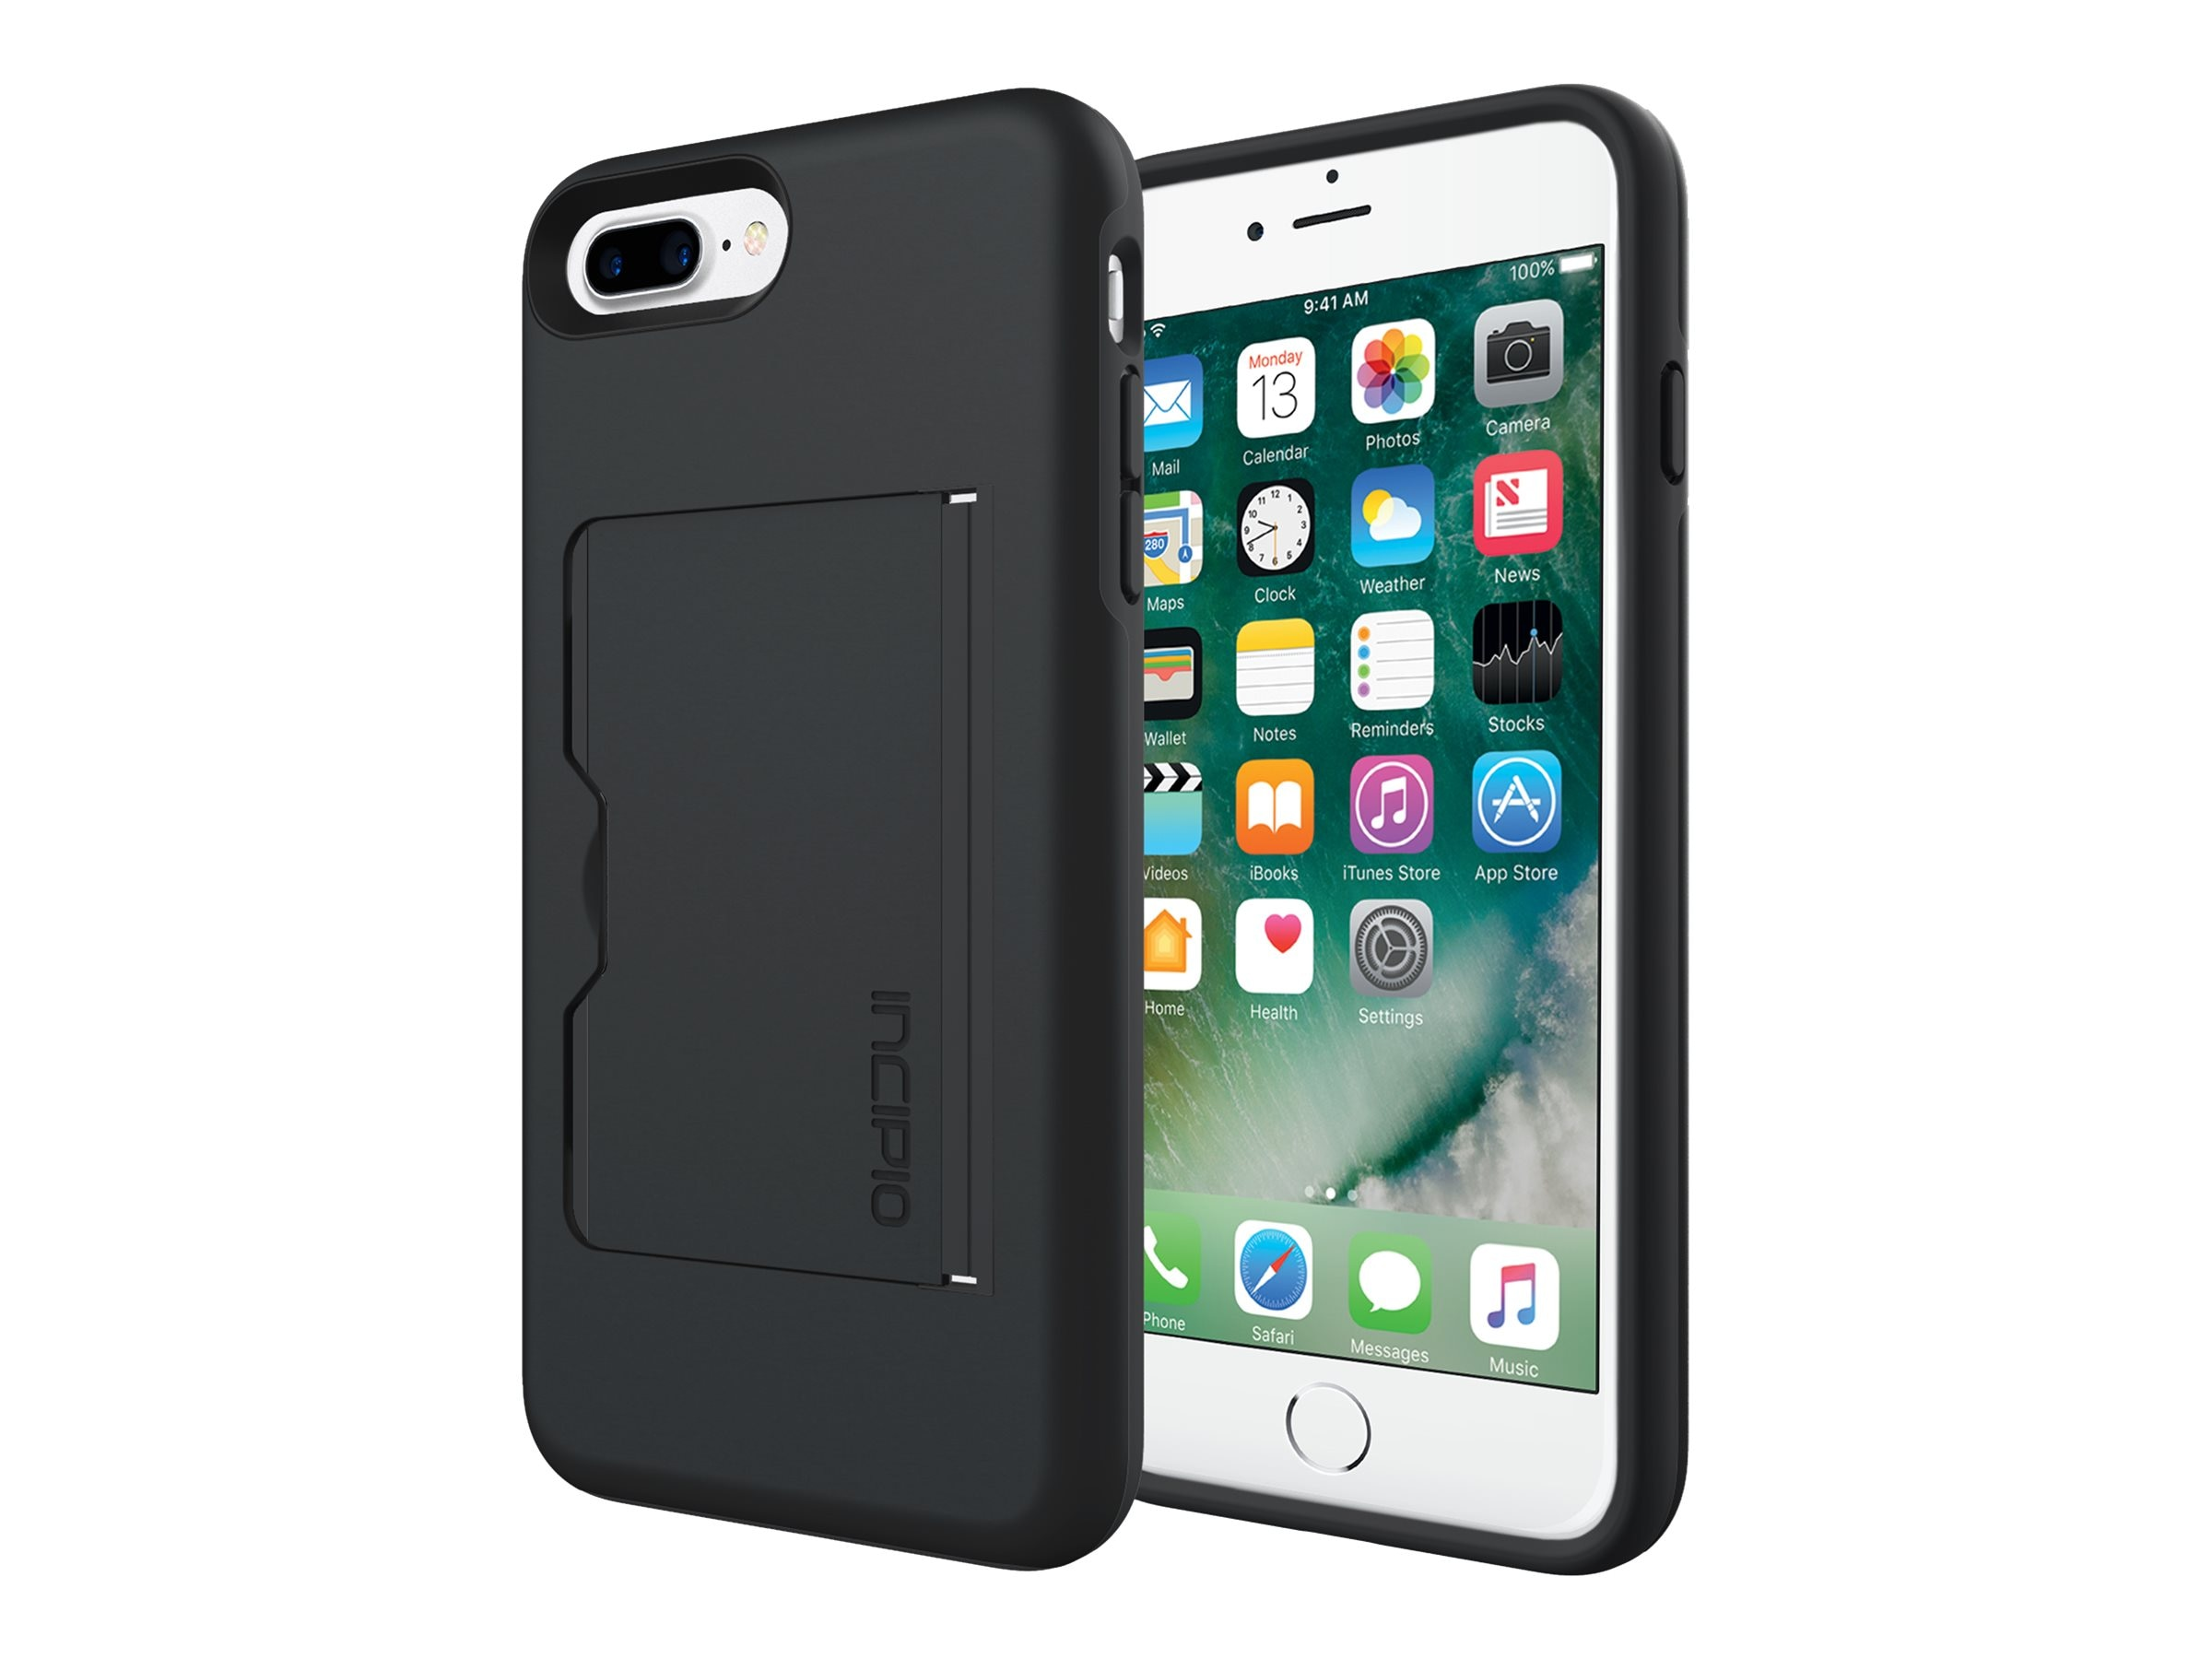 Incipio Stowaway Credit Card Case with Integrated Stand for iPhone 7 Plus, Black Black, IPH-1503-BLK